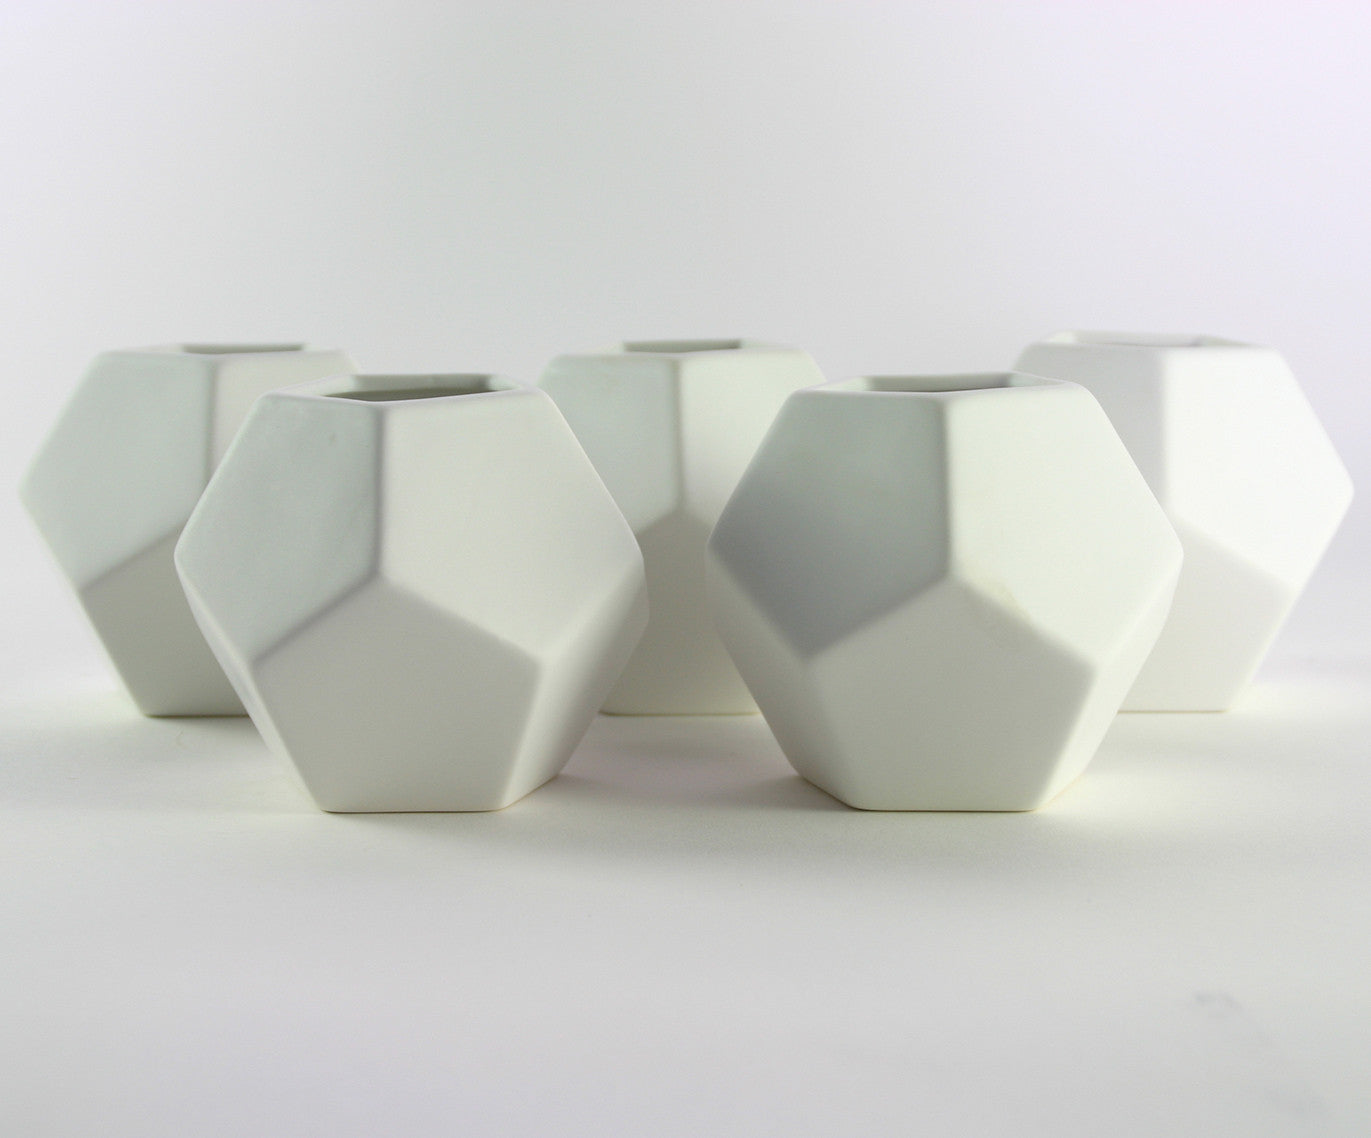 SMALL FACETED VASES (SET OF 5)